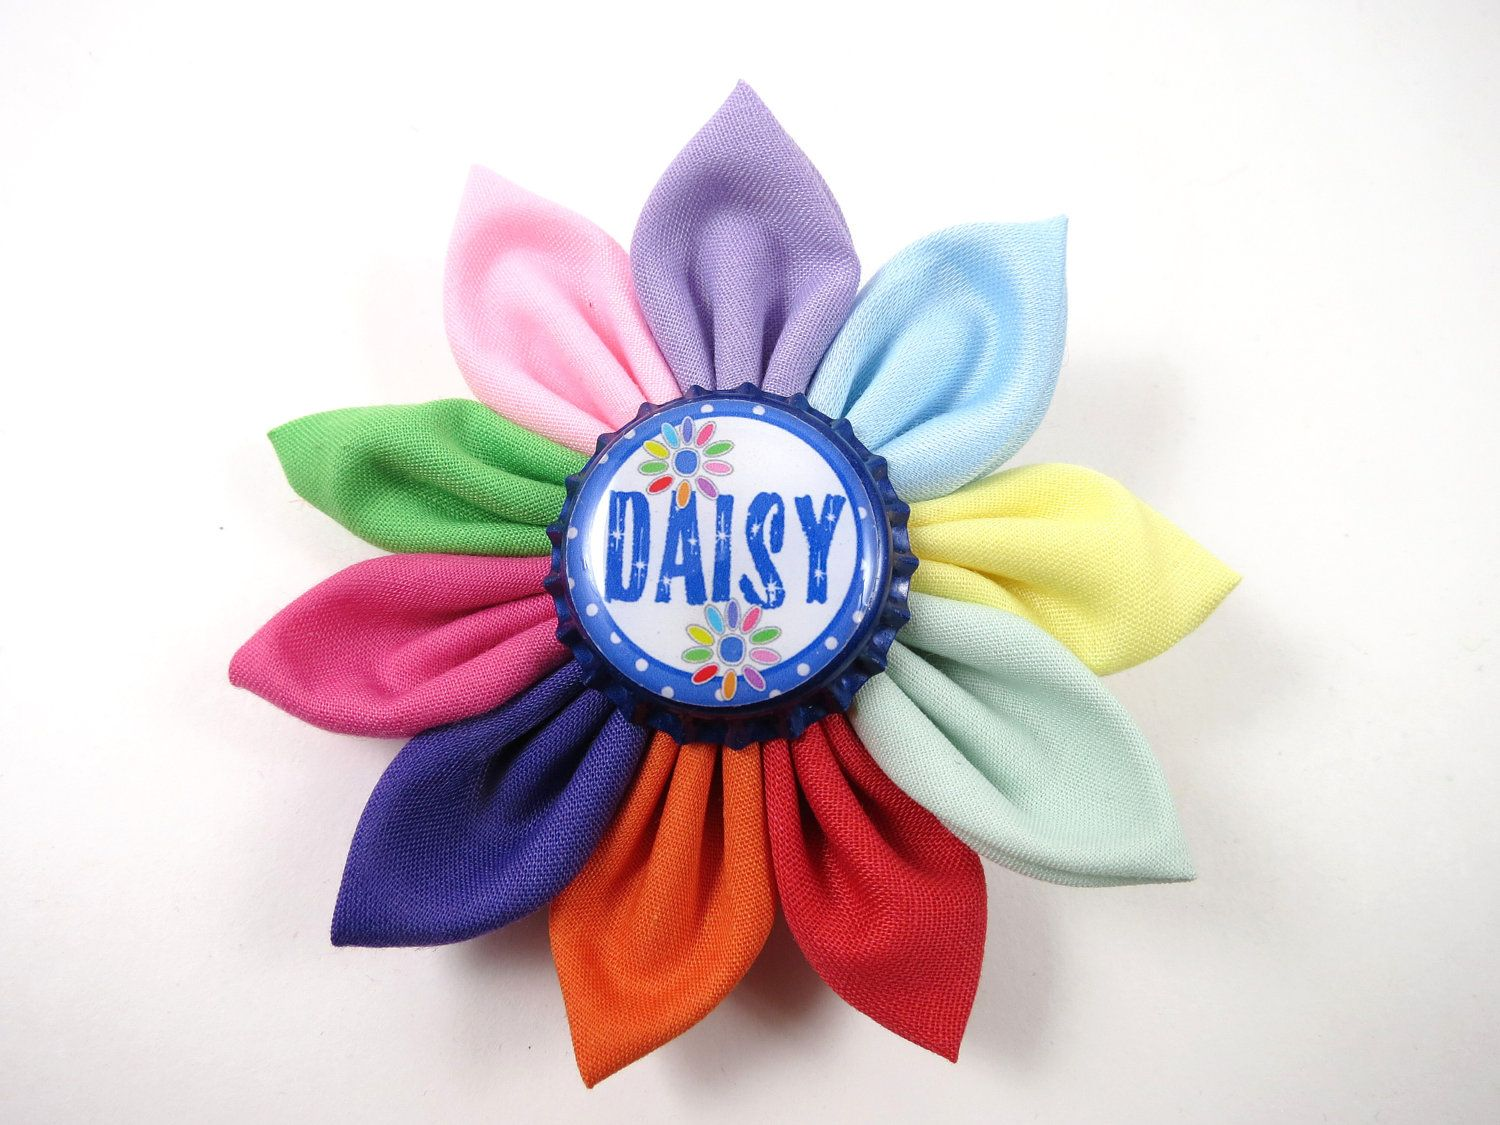 Daisy scouts hair bow daisy flower hair clip daisy girl scouts daisy scouts hair bow daisy flower hair clip daisy girl scouts flower hair bow rainbow hair bow izmirmasajfo